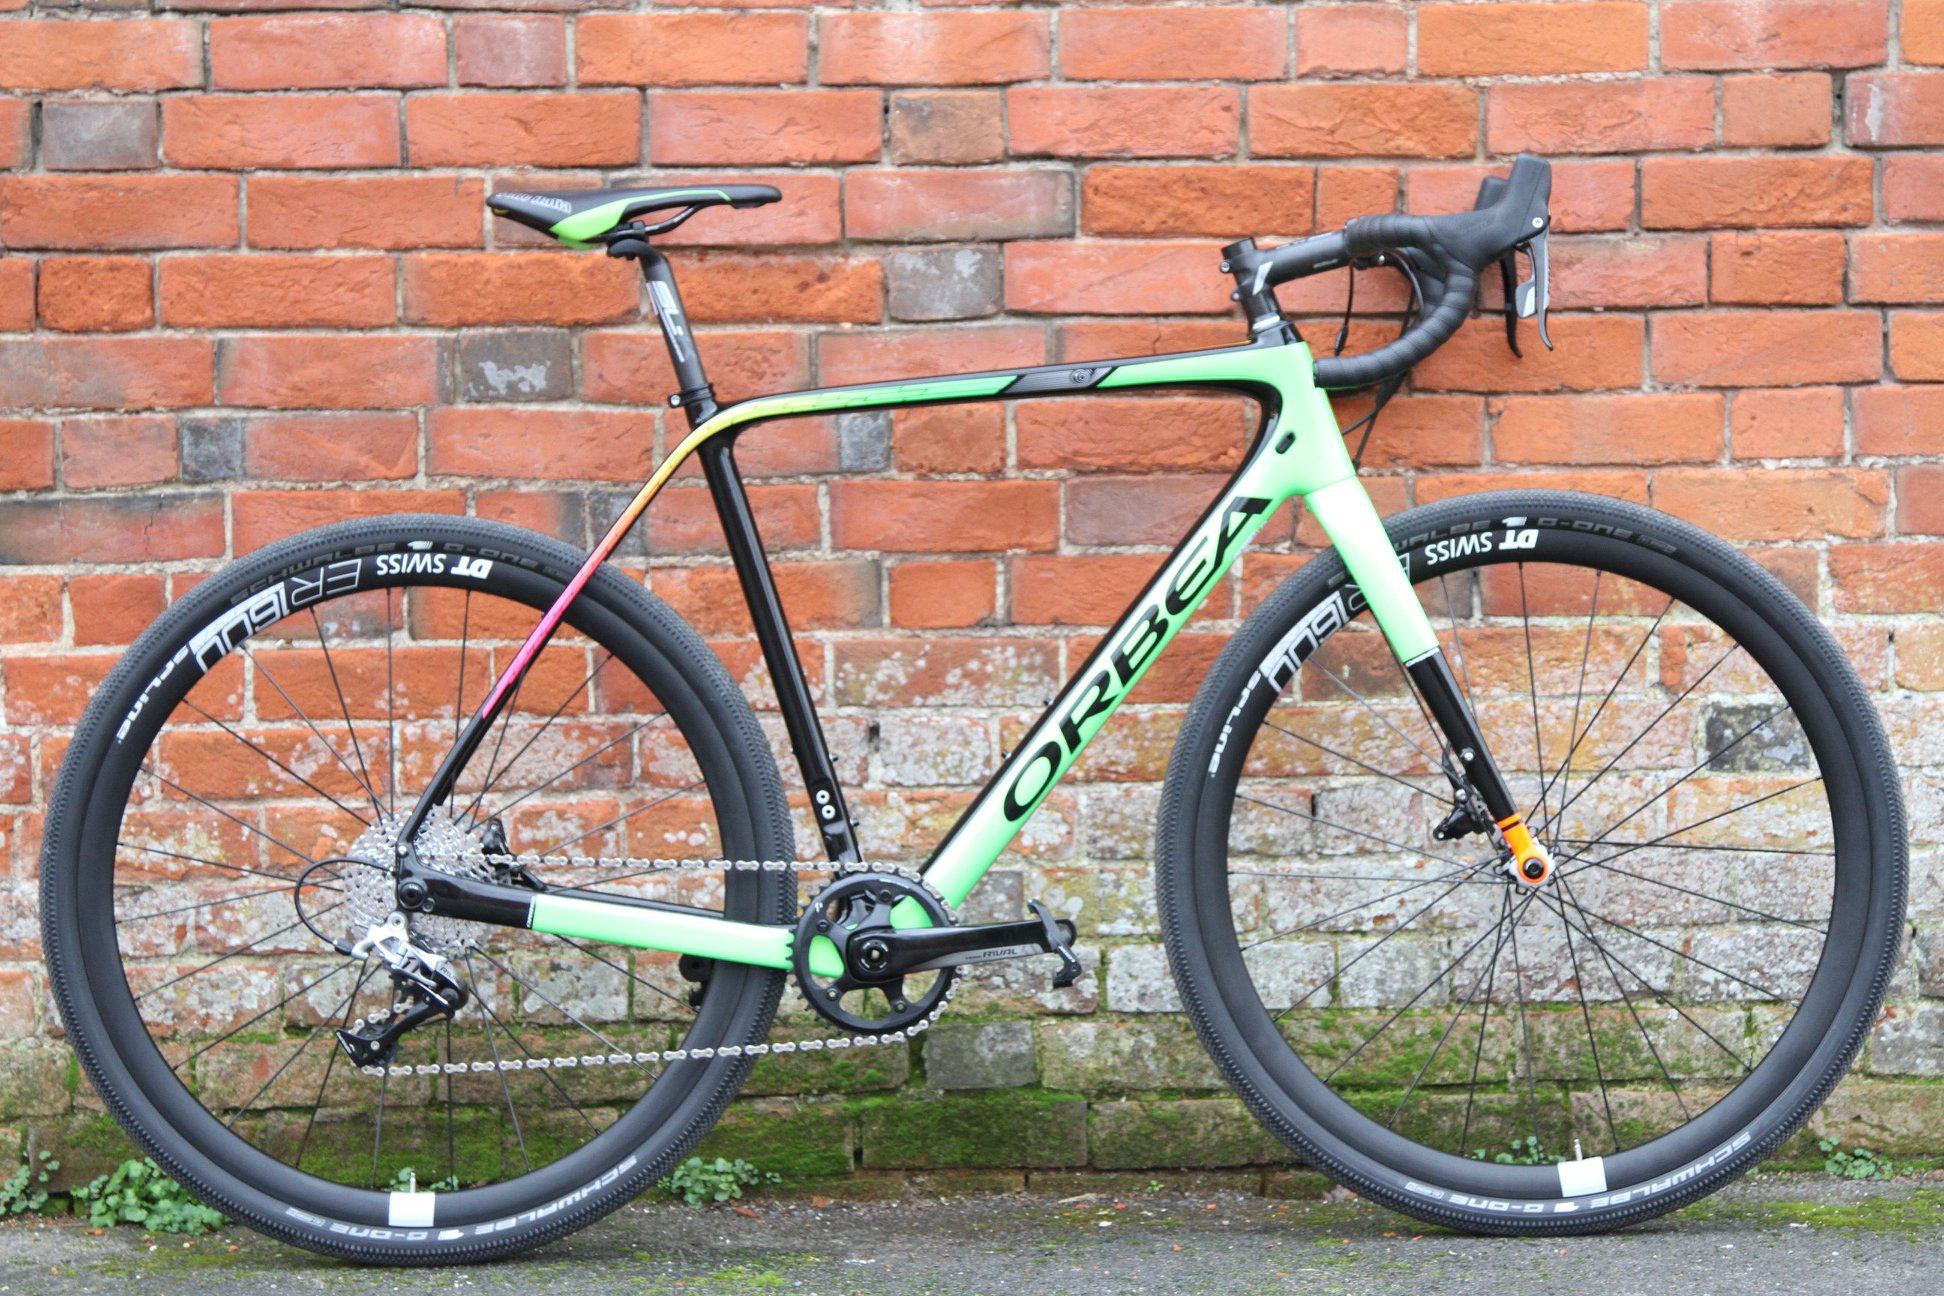 ORBEA   Orbea, as one of cycling's oldest companies, is one of the custodians of the old traditions, of the roots and heritage of the sport.From their first day setting foot in the world of cycling they've partnered with the best competitive cyclists.